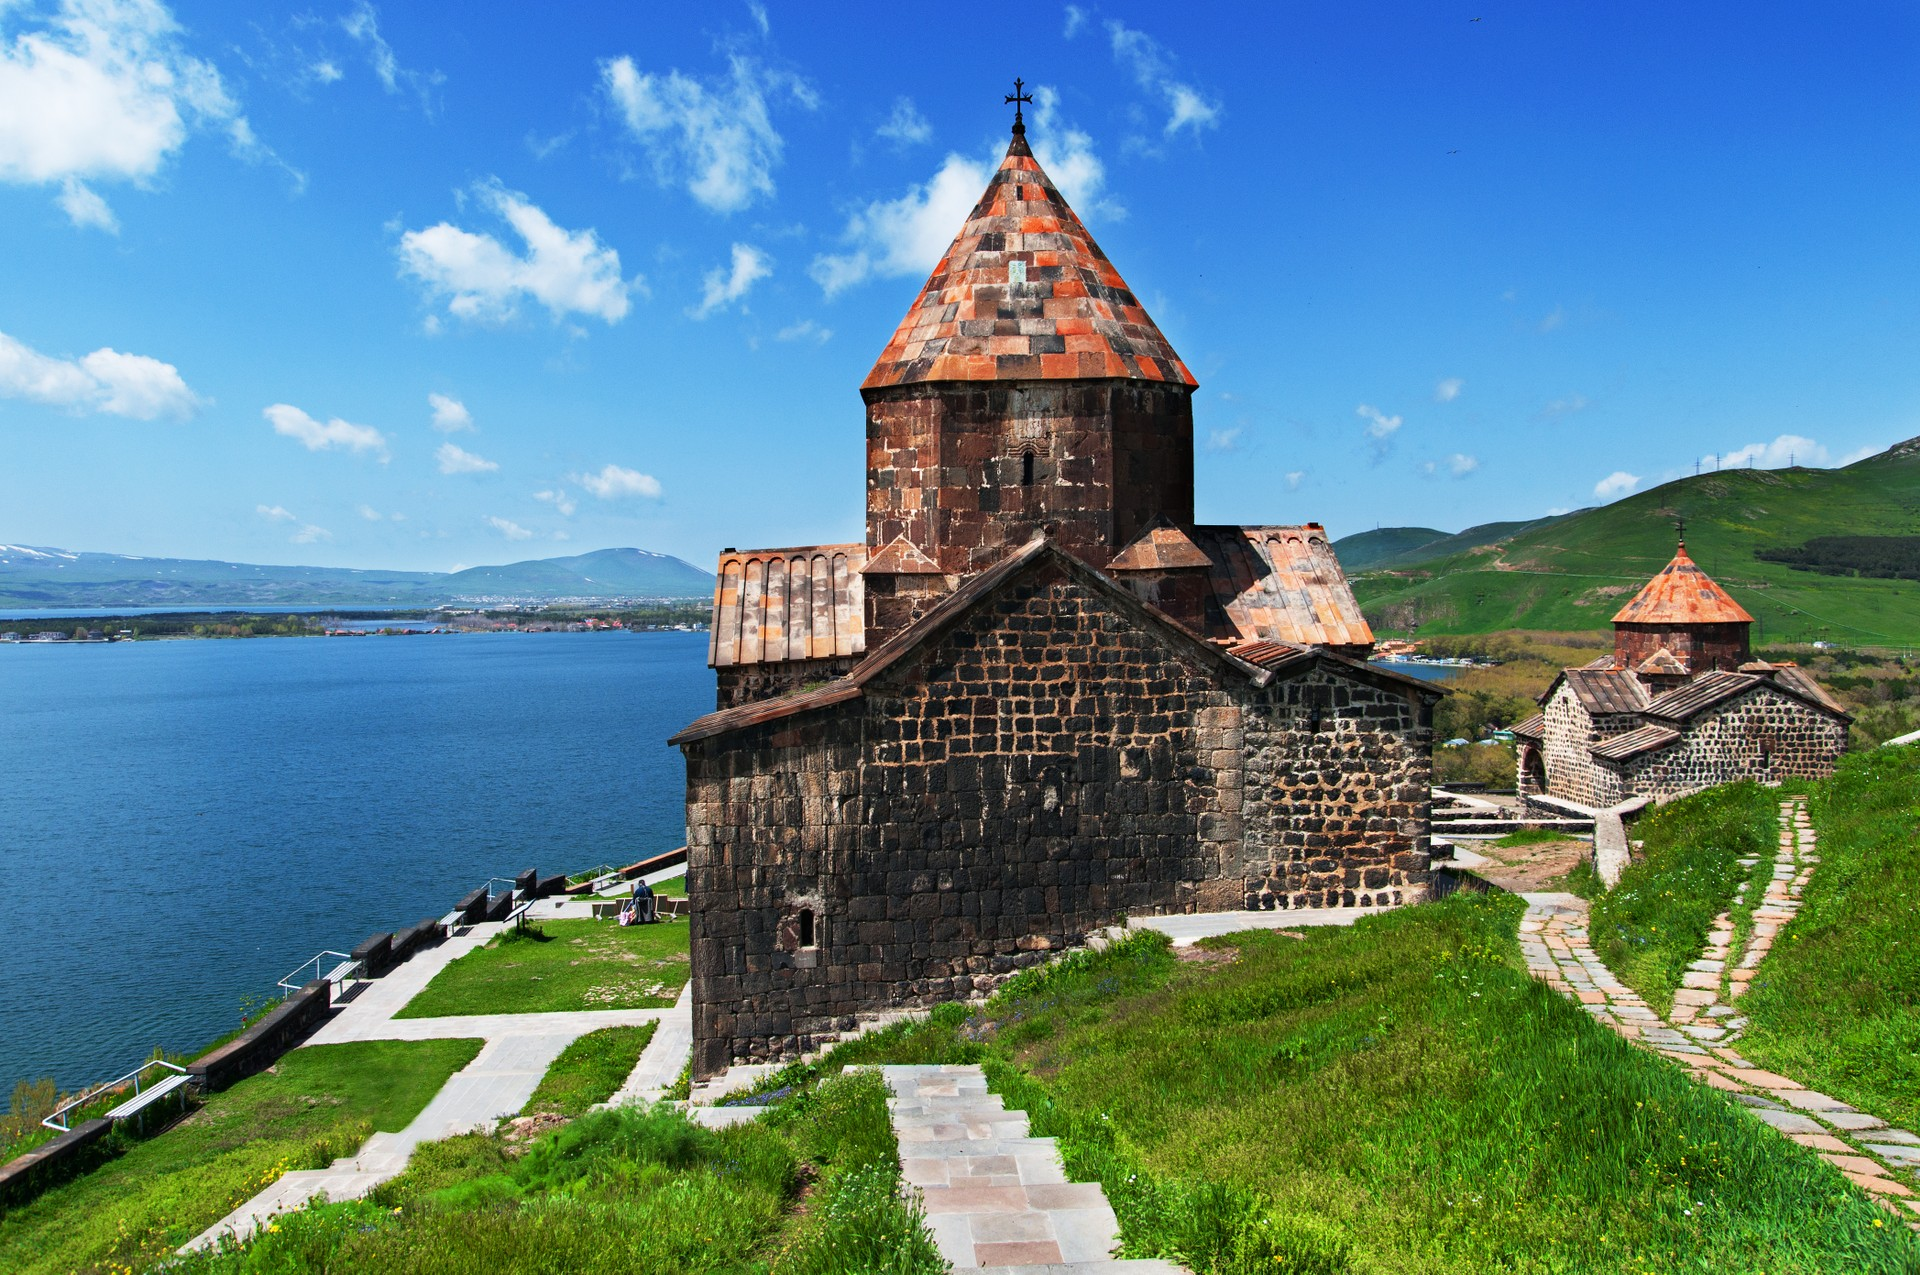 Sevanavank Monastry on the northwestern side of Lake Sevan